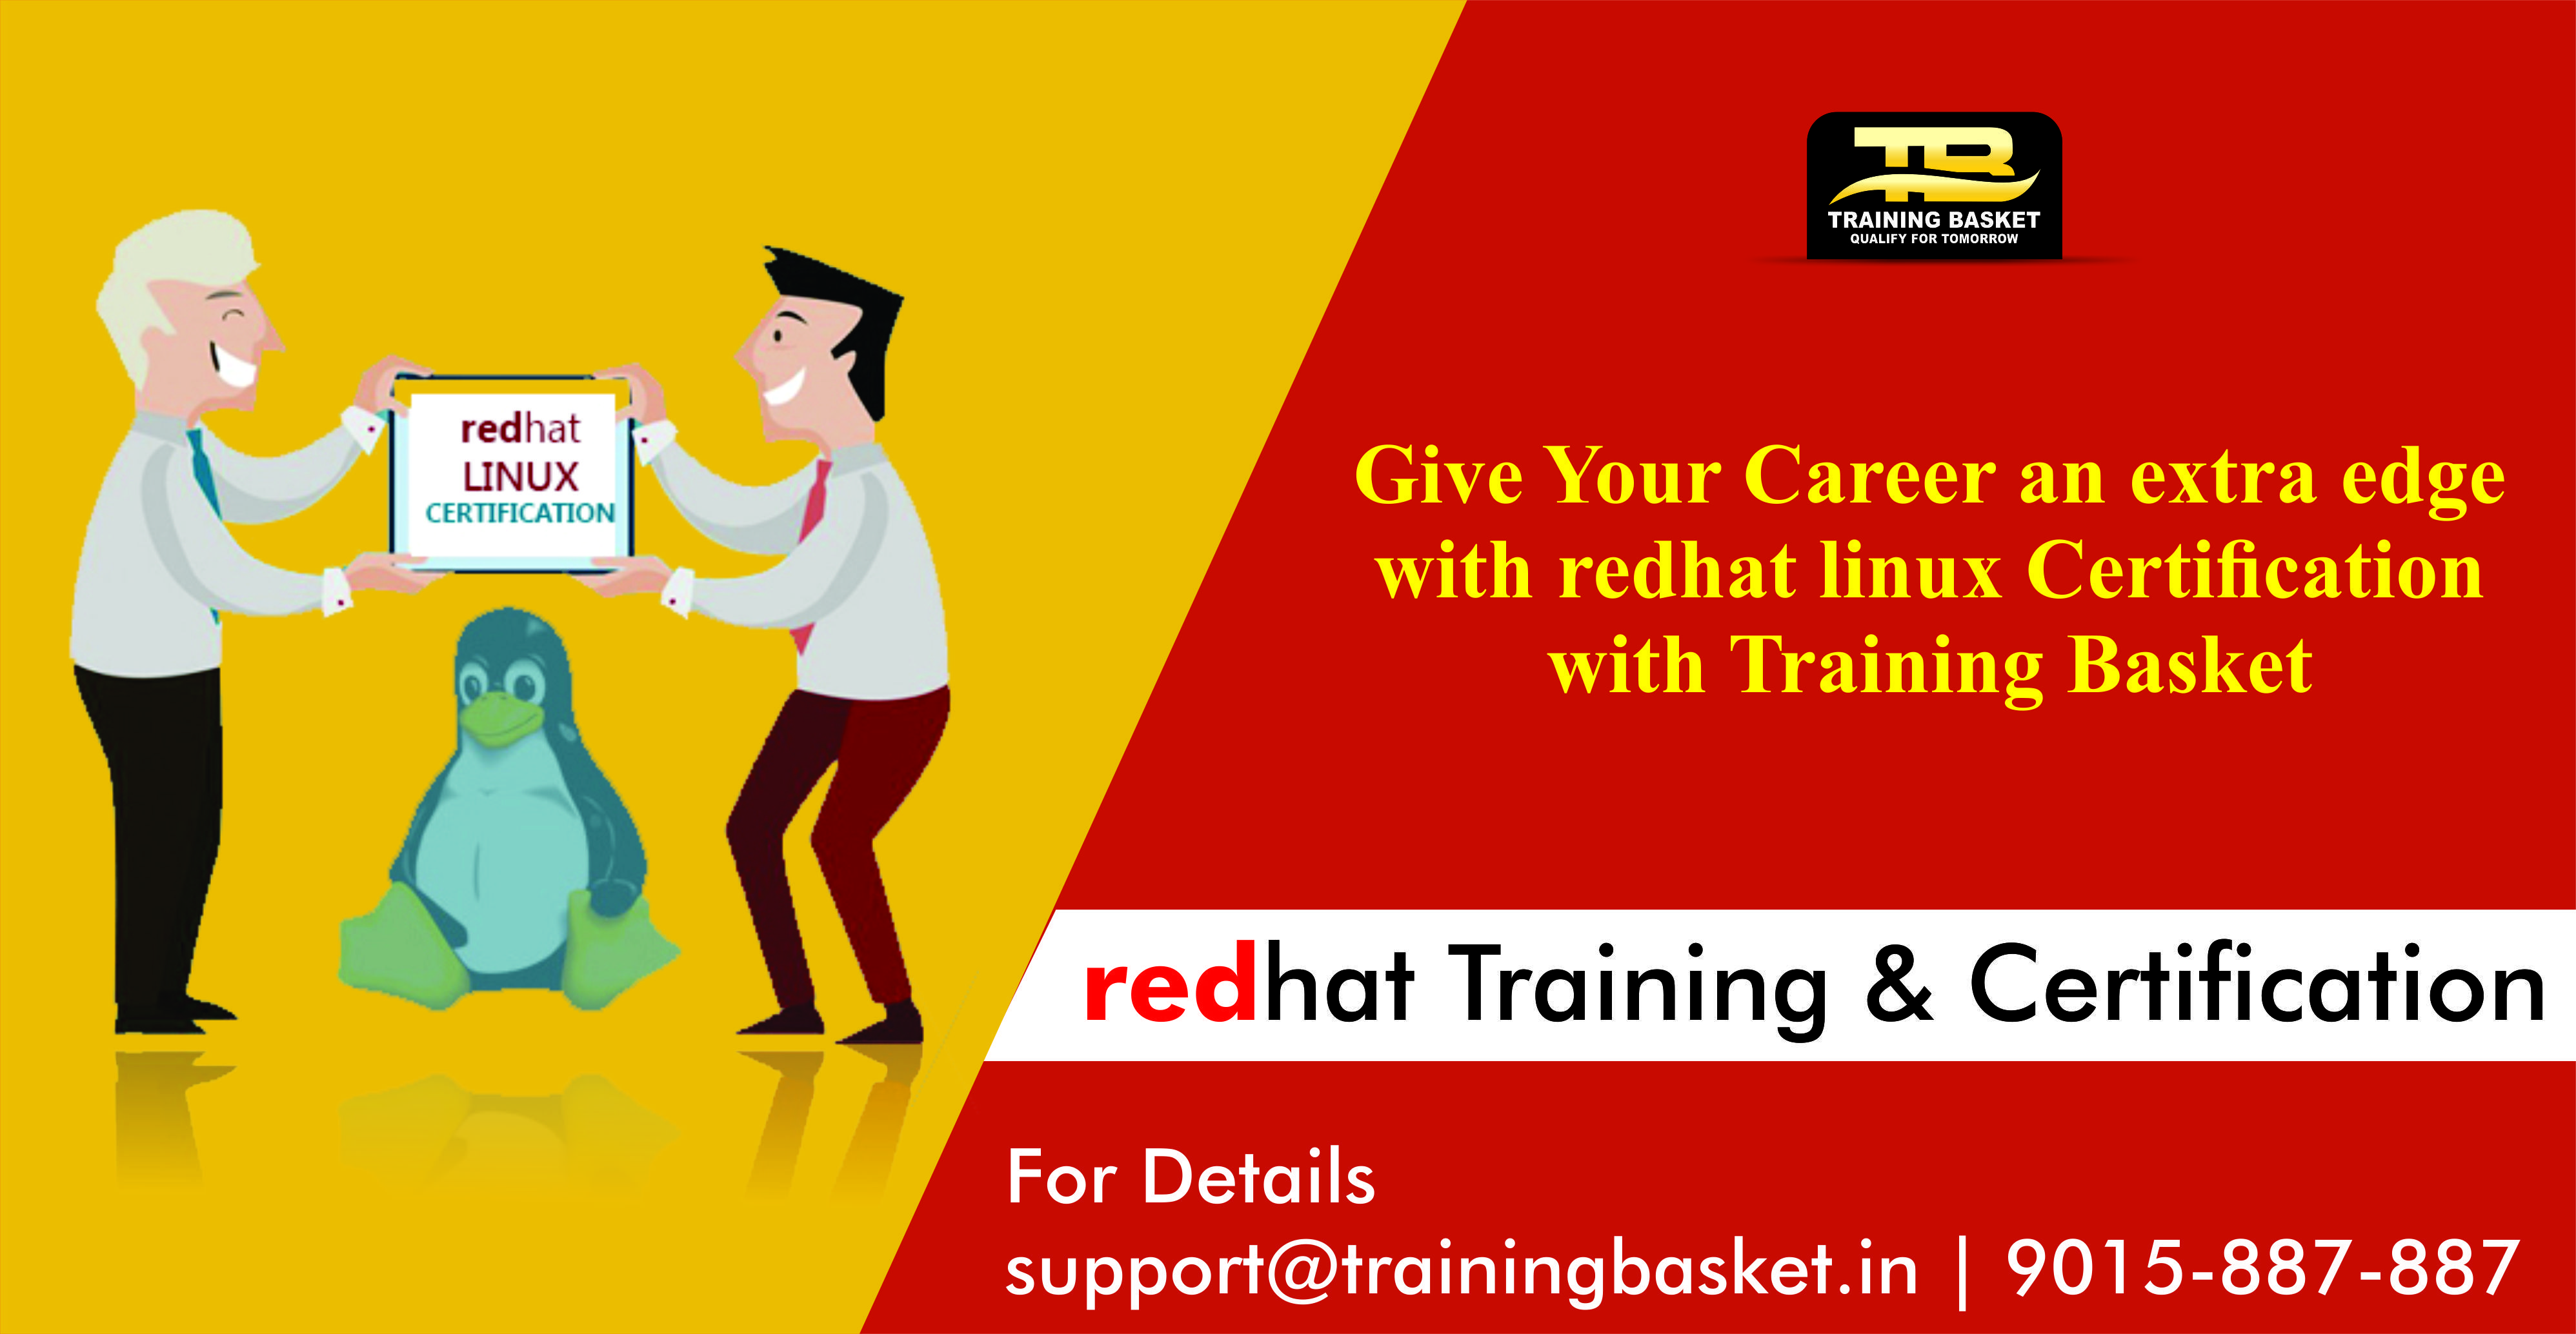 Training Basket Offers Red Hat Certification Course With Live